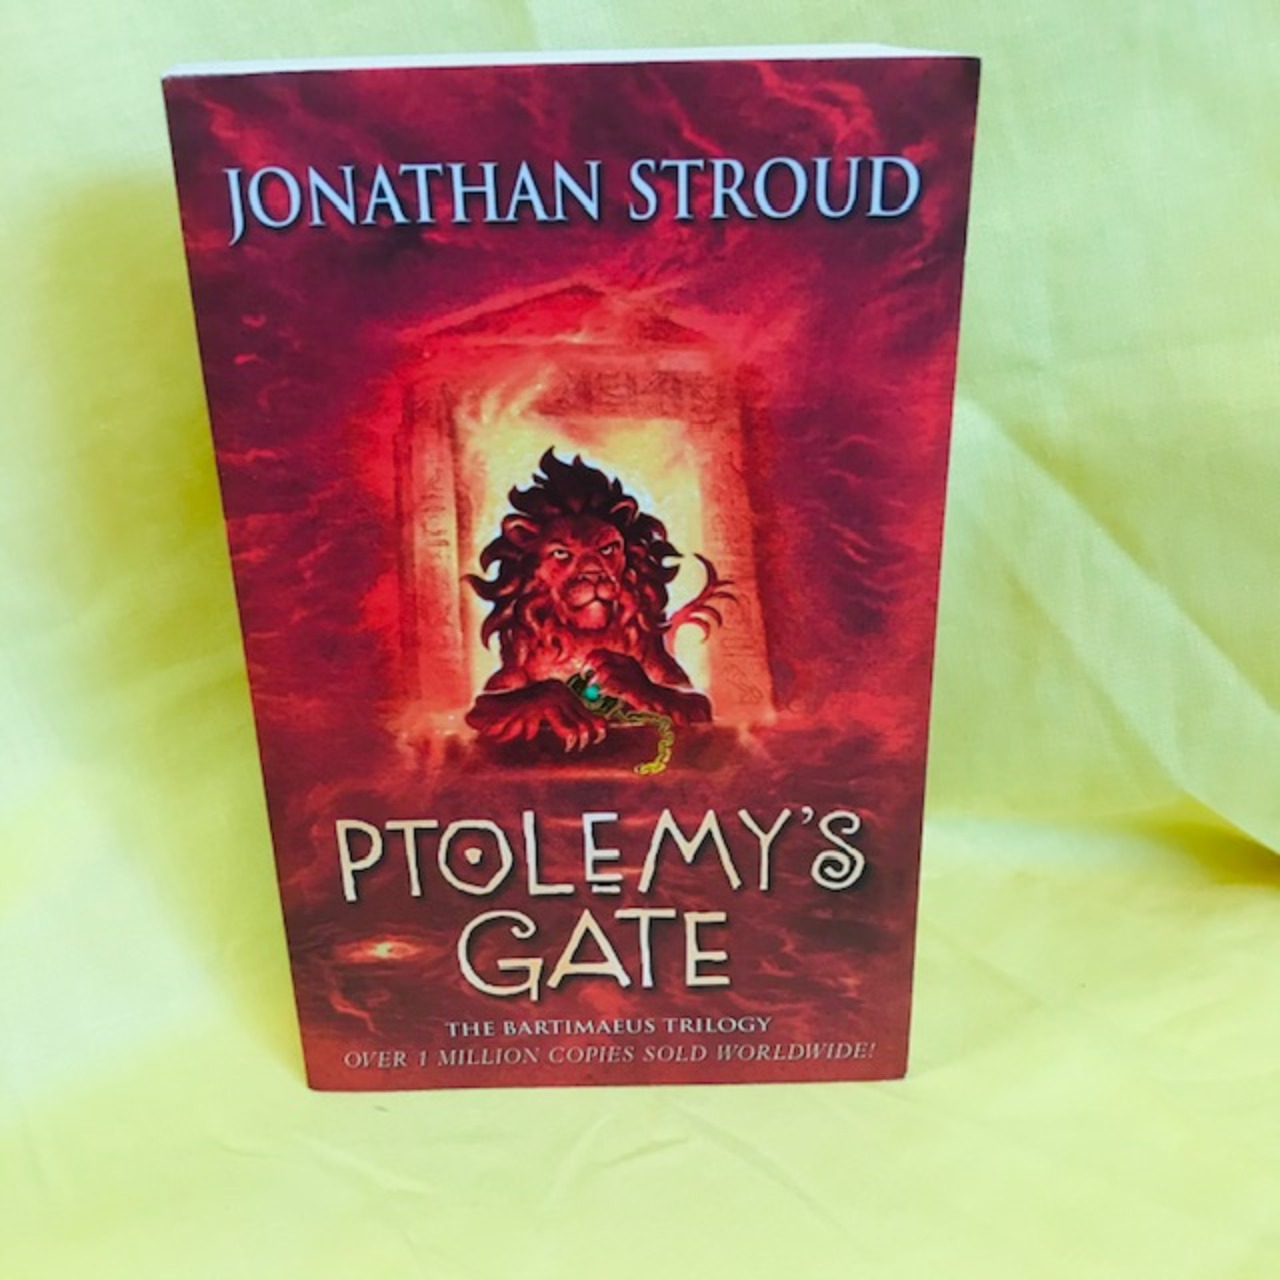 PTOLEMY'S GATE BY JONATHAN STROUD - BOOK